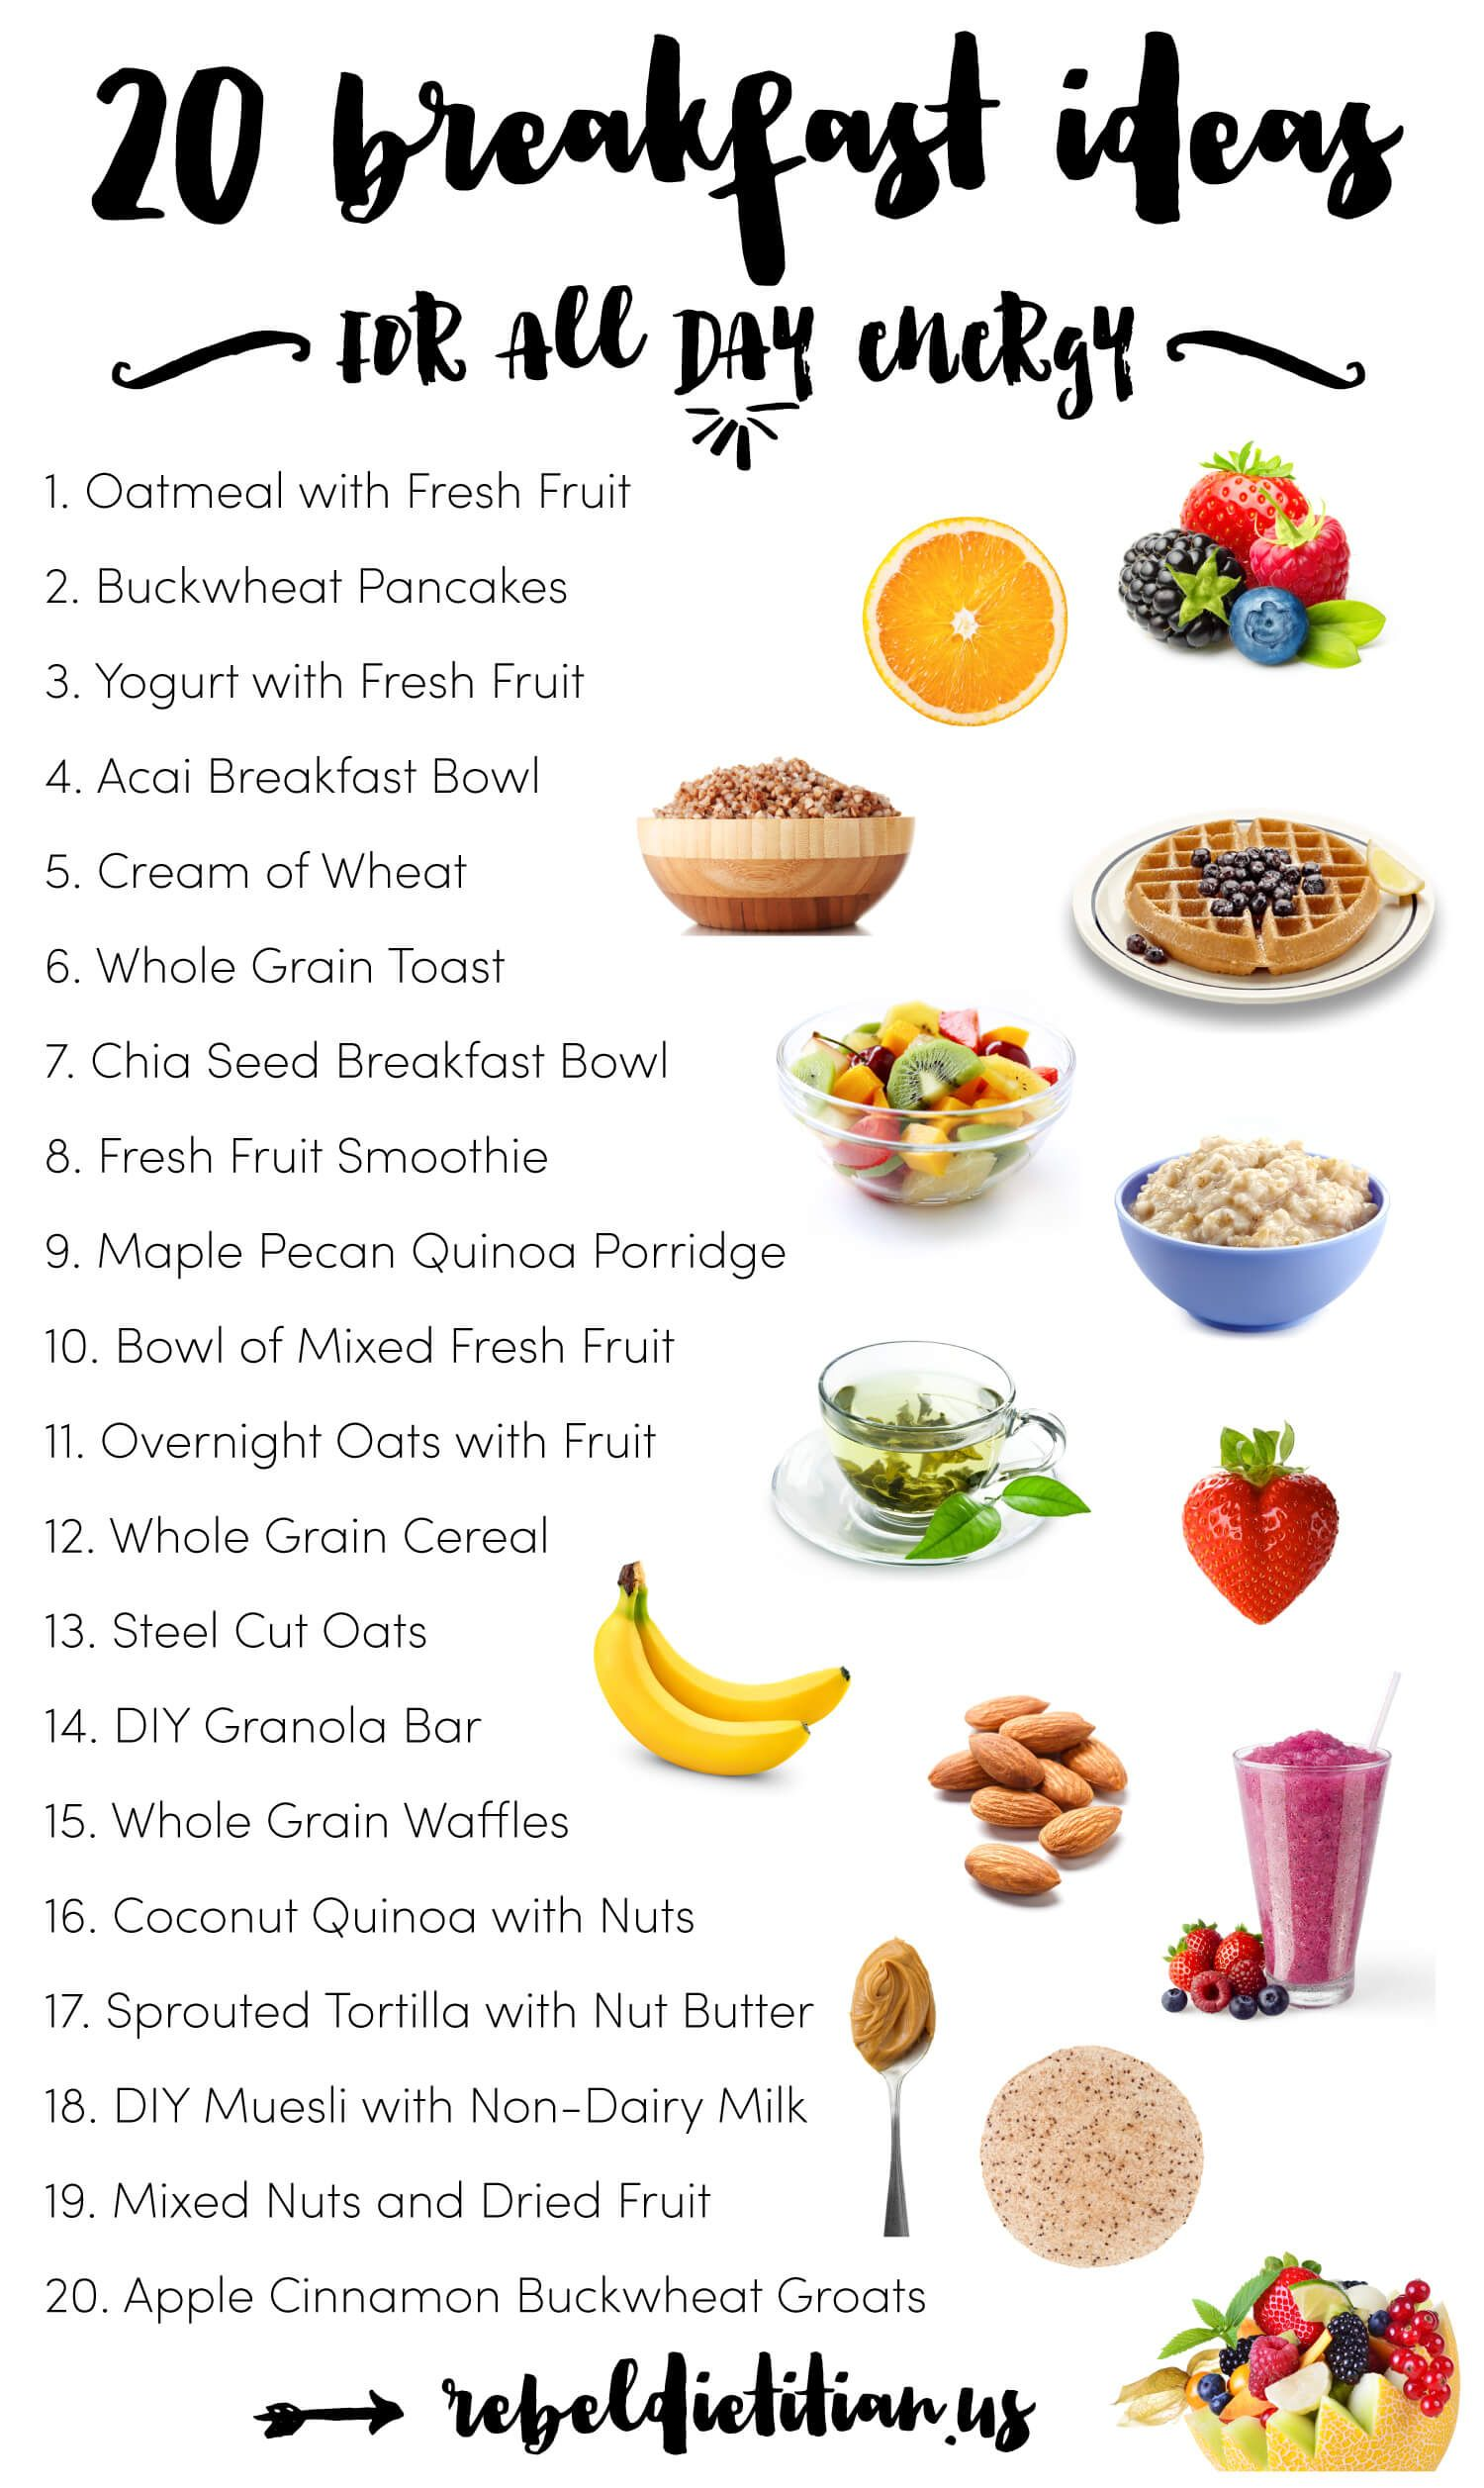 The best healthy eating gift ideas! Clean eating